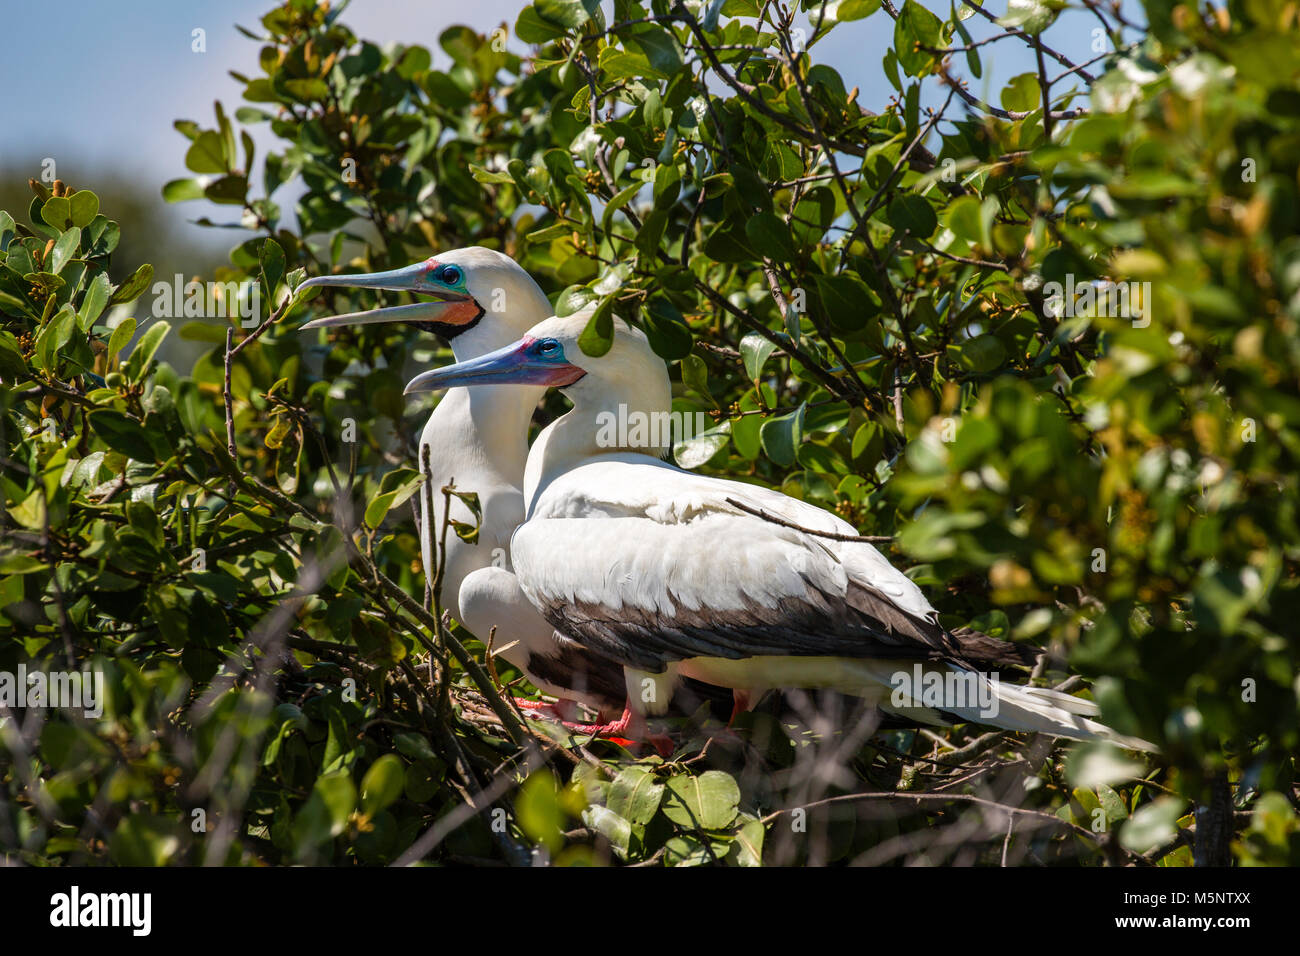 Red Footed Booby sanctuary at Half Moon Caye National Monument, Turneffe Atoll, Belize - Stock Image